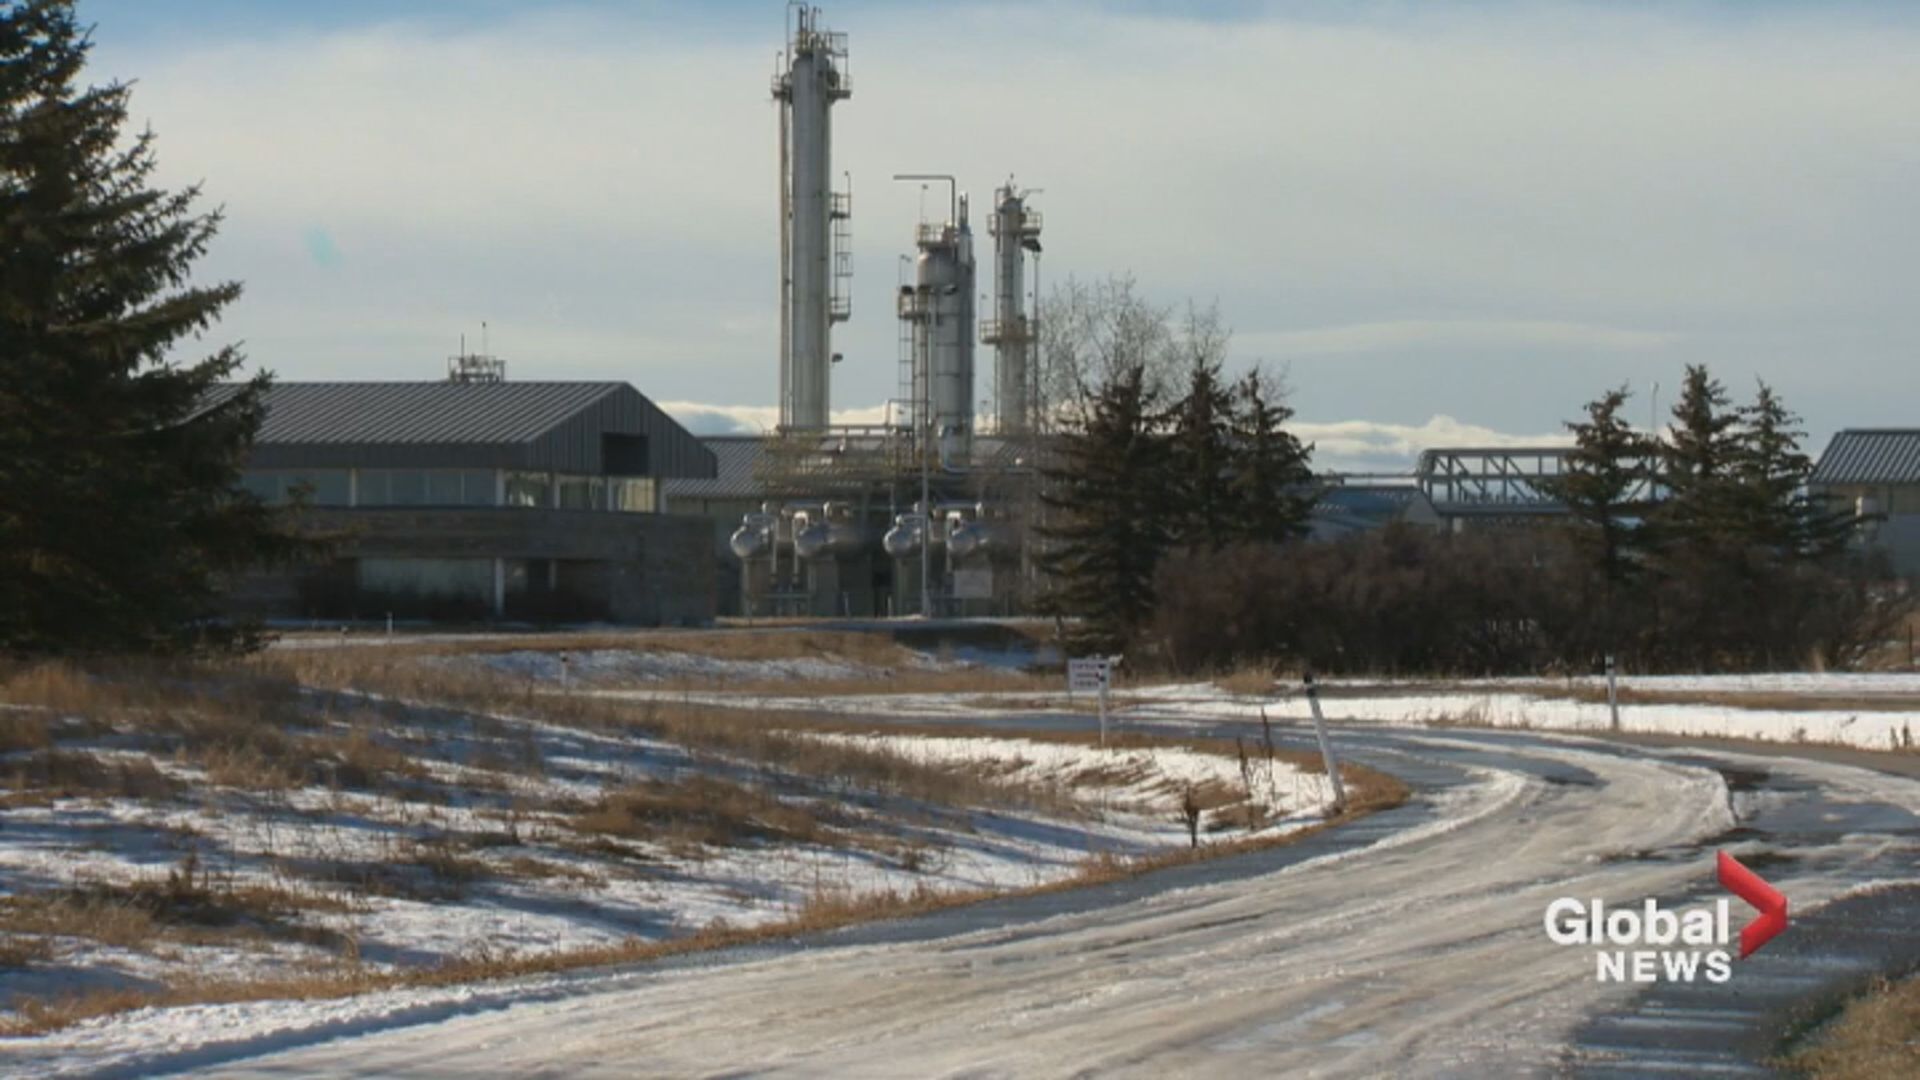 Oil companies owe nearly $200M in back property taxes to Alberta municipalities